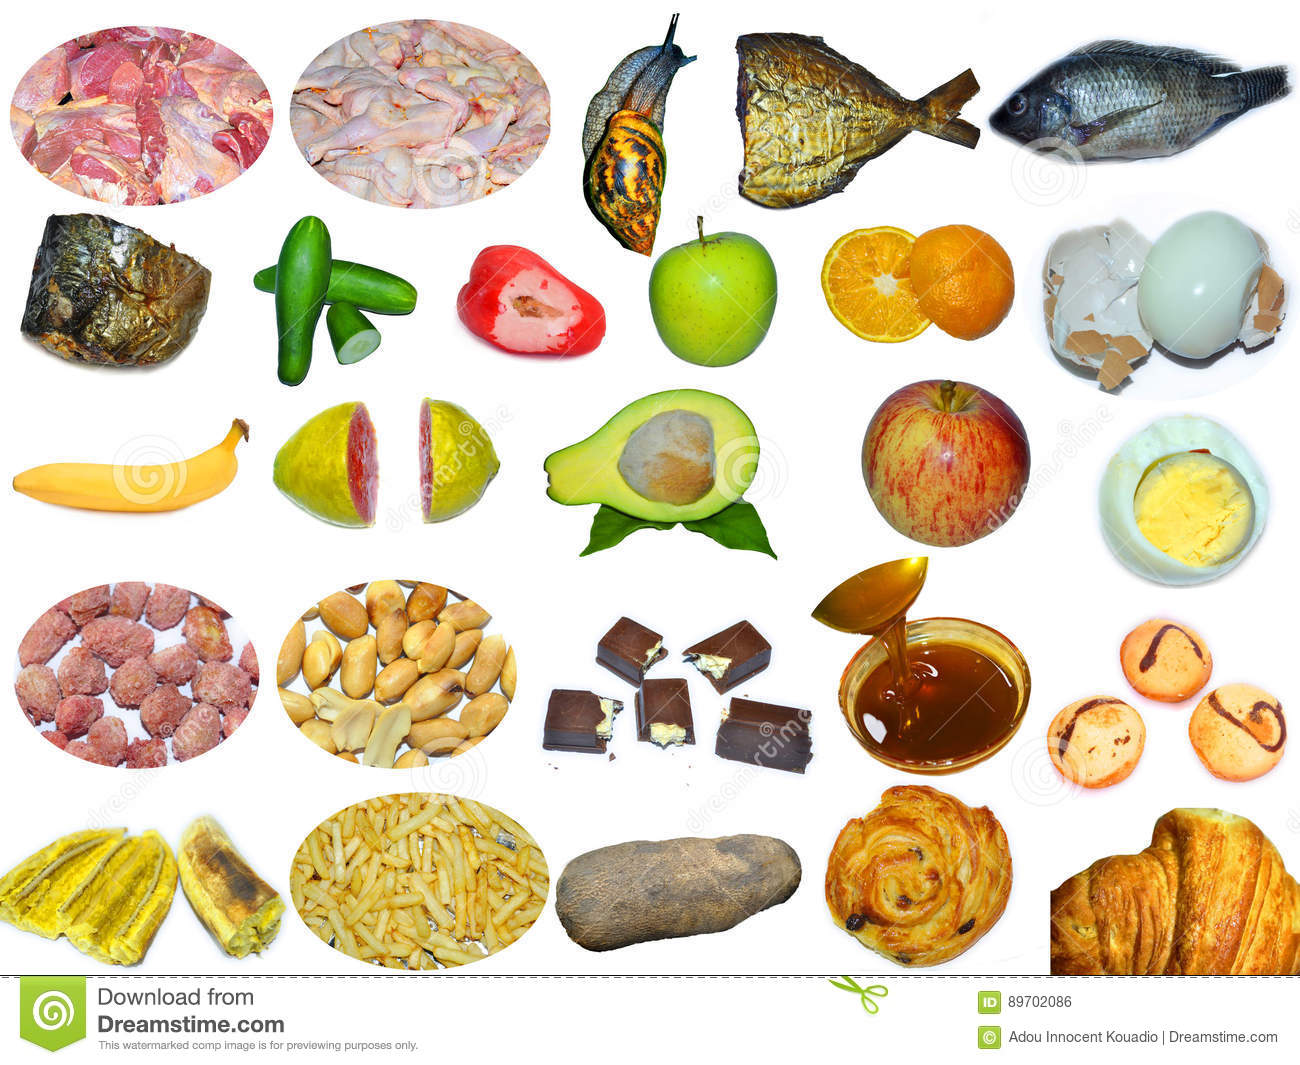 The Best (And Worst) Vegetables for a Low-Carb Diet The Best (And Worst) Vegetables for a Low-Carb Diet new picture